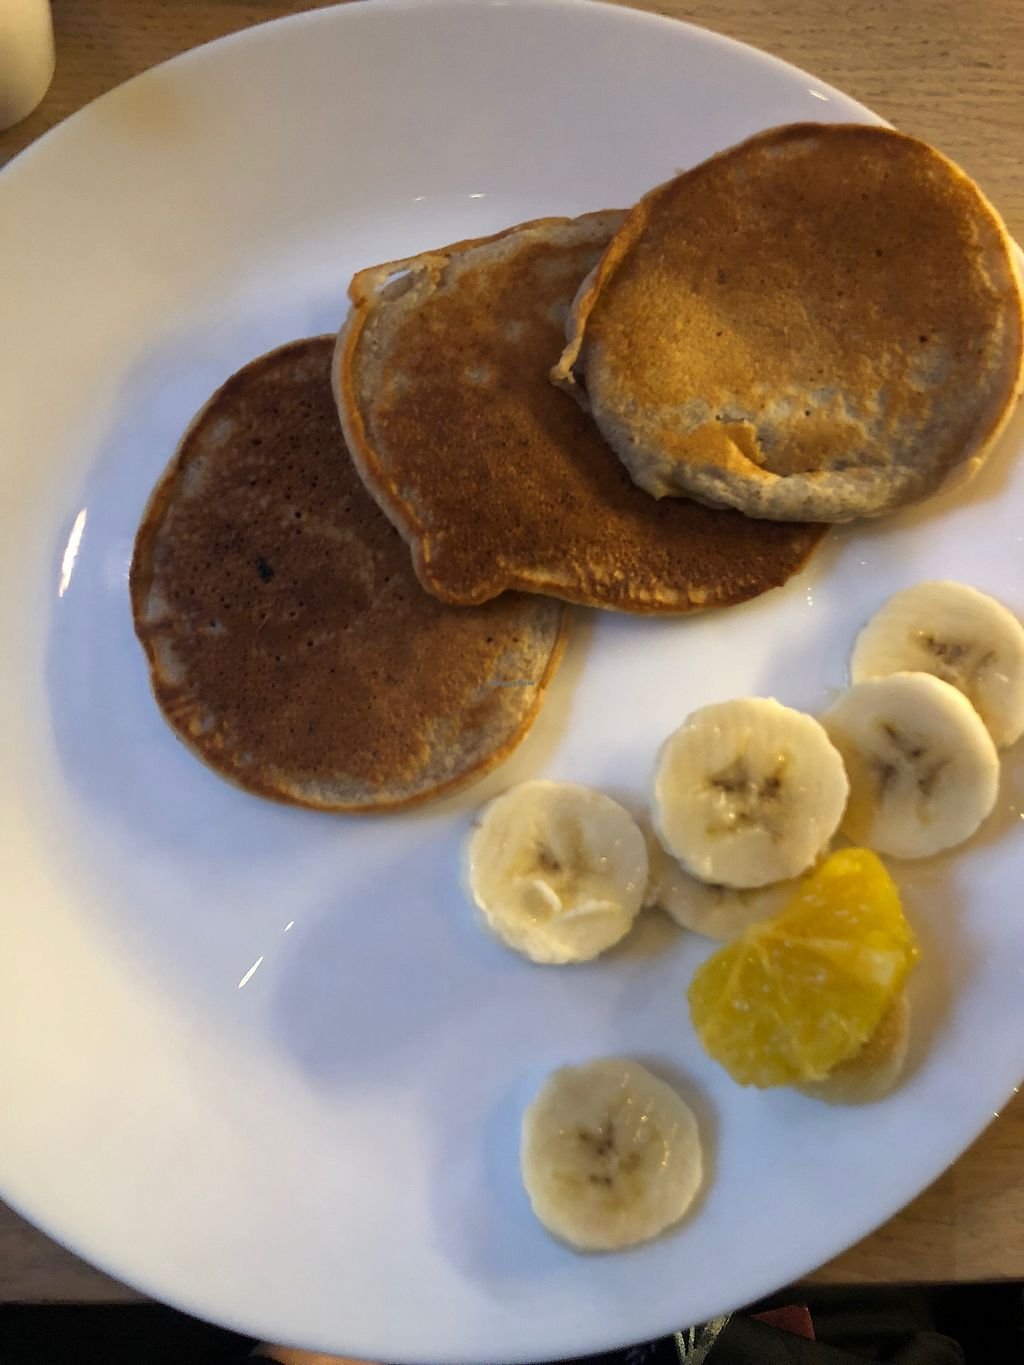 """Photo of Anima Cafe  by <a href=""""/members/profile/MarteBach"""">MarteBach</a> <br/>Vegan pancakes <br/> January 6, 2018  - <a href='/contact/abuse/image/90649/343563'>Report</a>"""